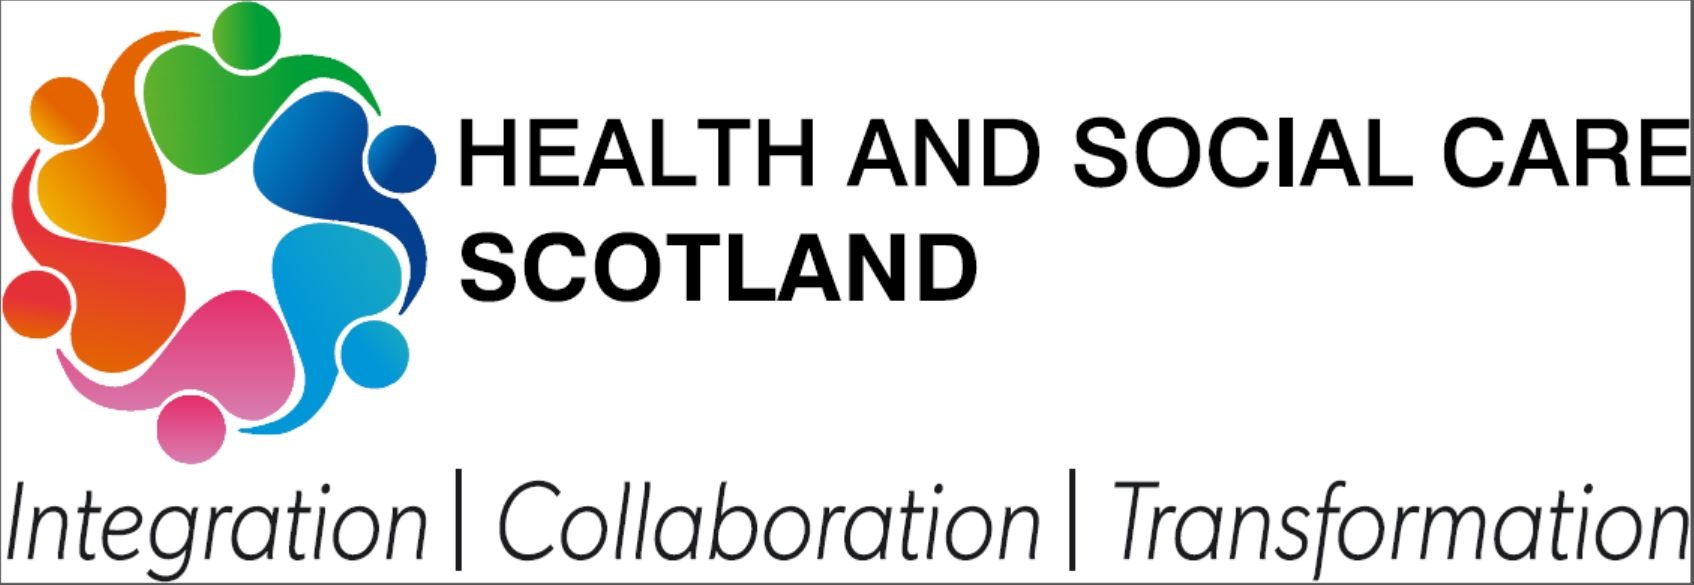 Vibrant new website sees Health and Social Care Scotland go online